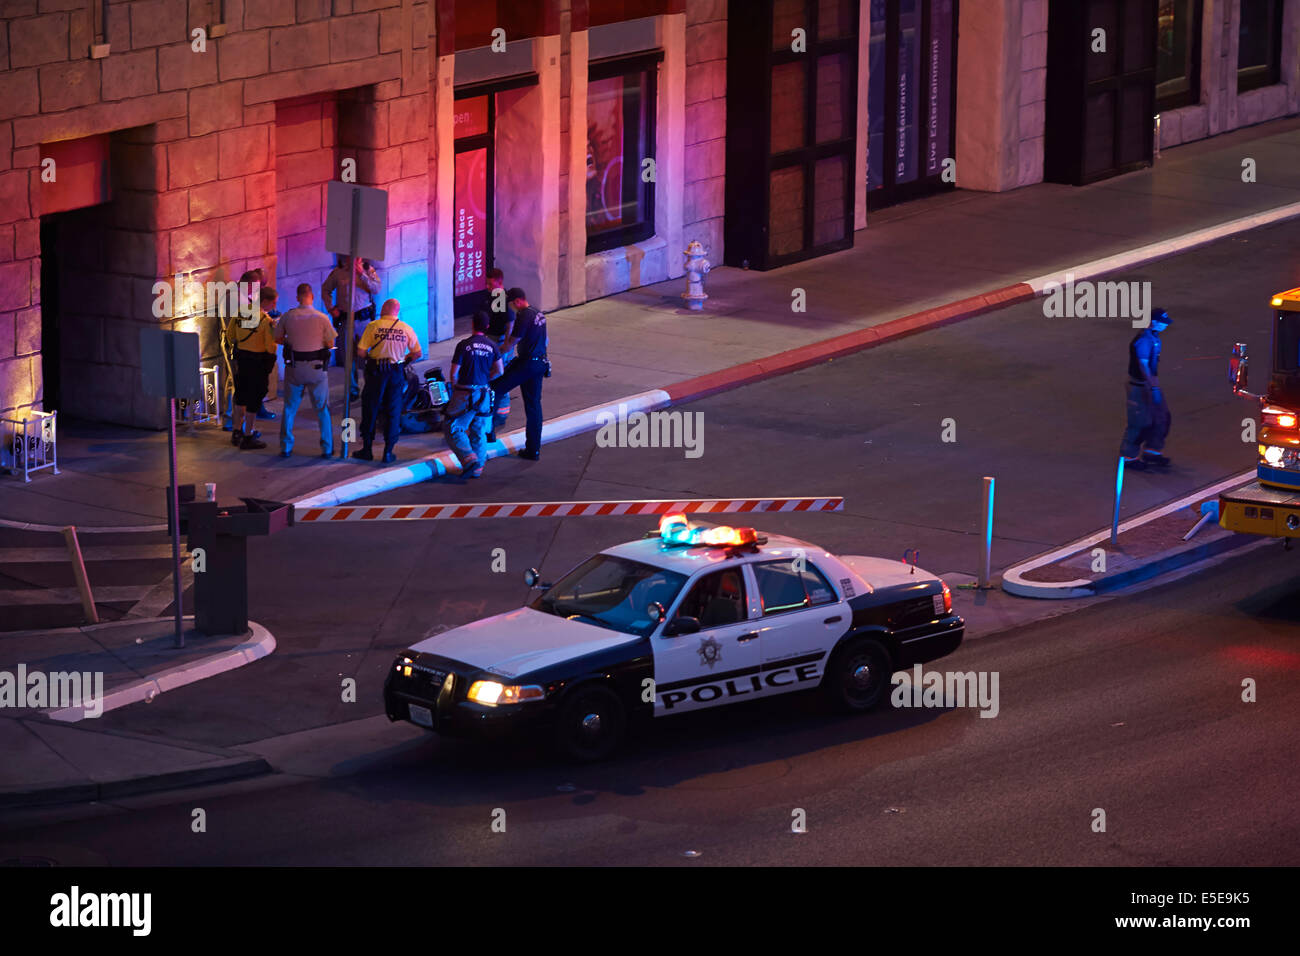 Police department officers attend a scene just off the Strip at Las Vegas Boulevard South, in Paradise, Nevada USA - Stock Image